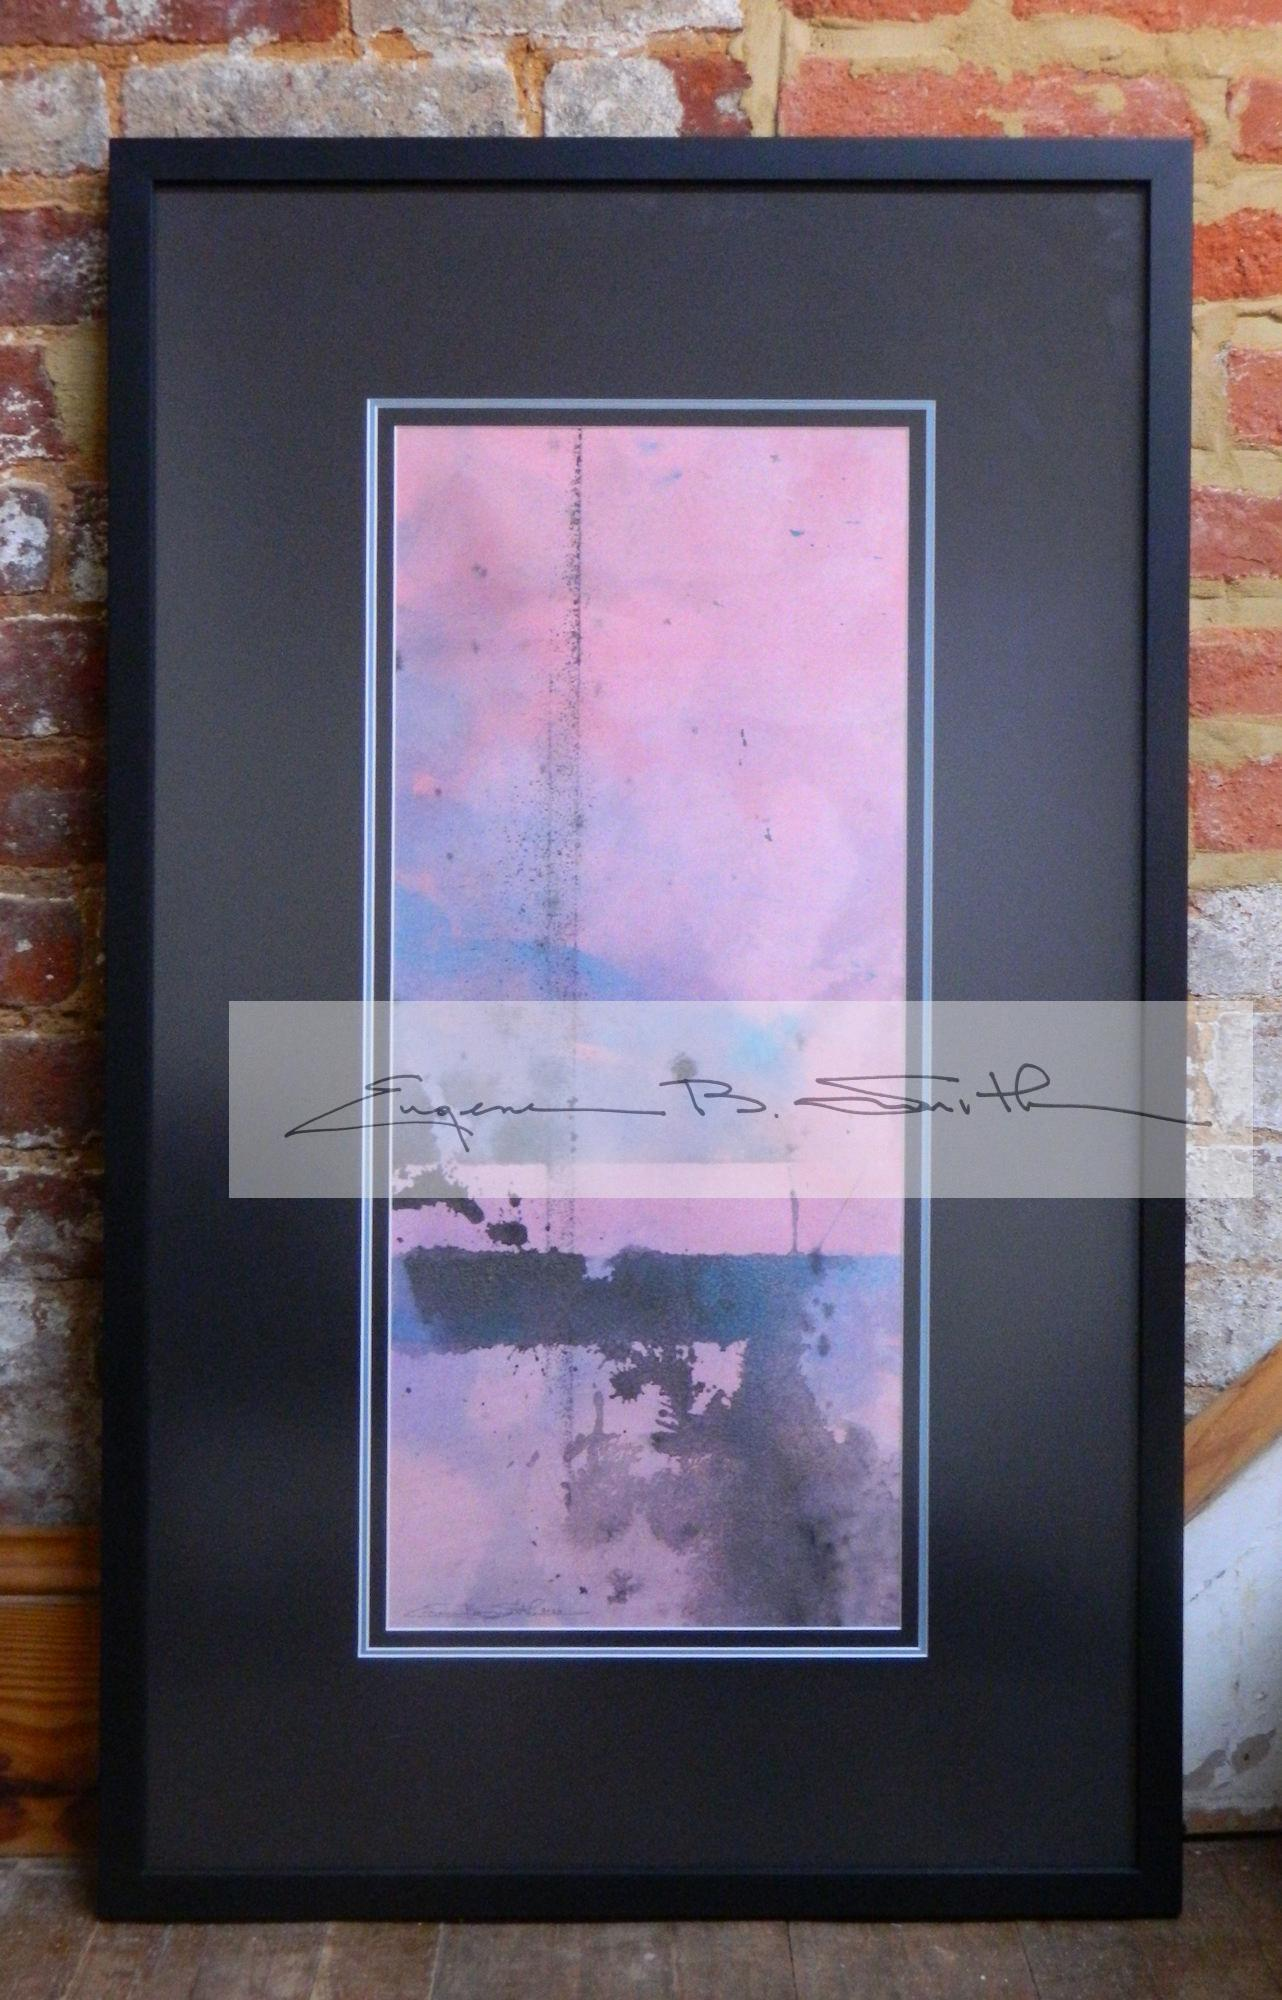 Pink Abstract | Image size: 23.5 x 10 | Frame size: 33.5 x 10 | Call for price